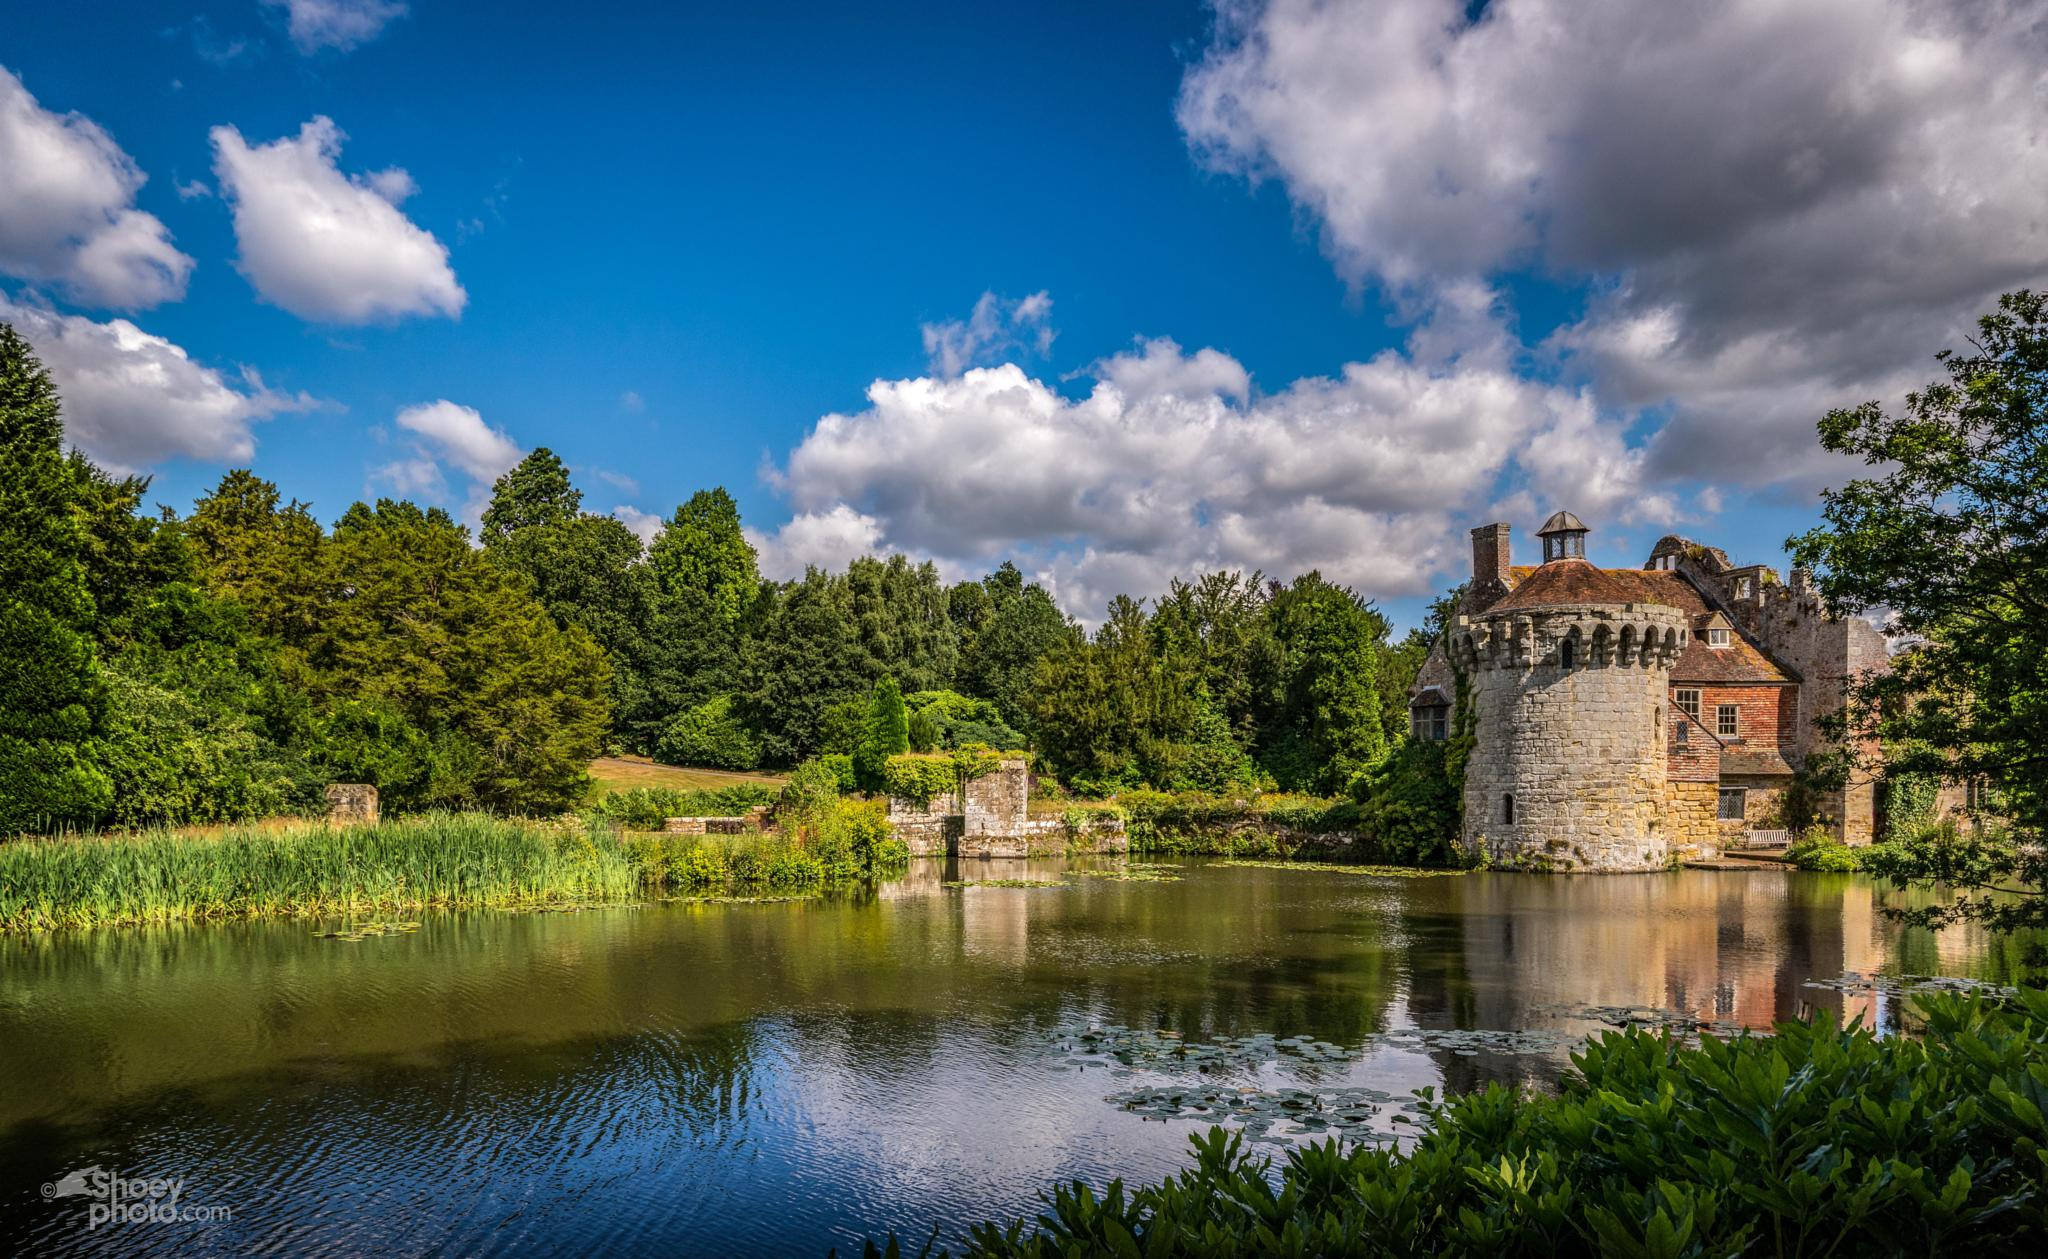 Scotney Castle UK by Shoeyphoto.com